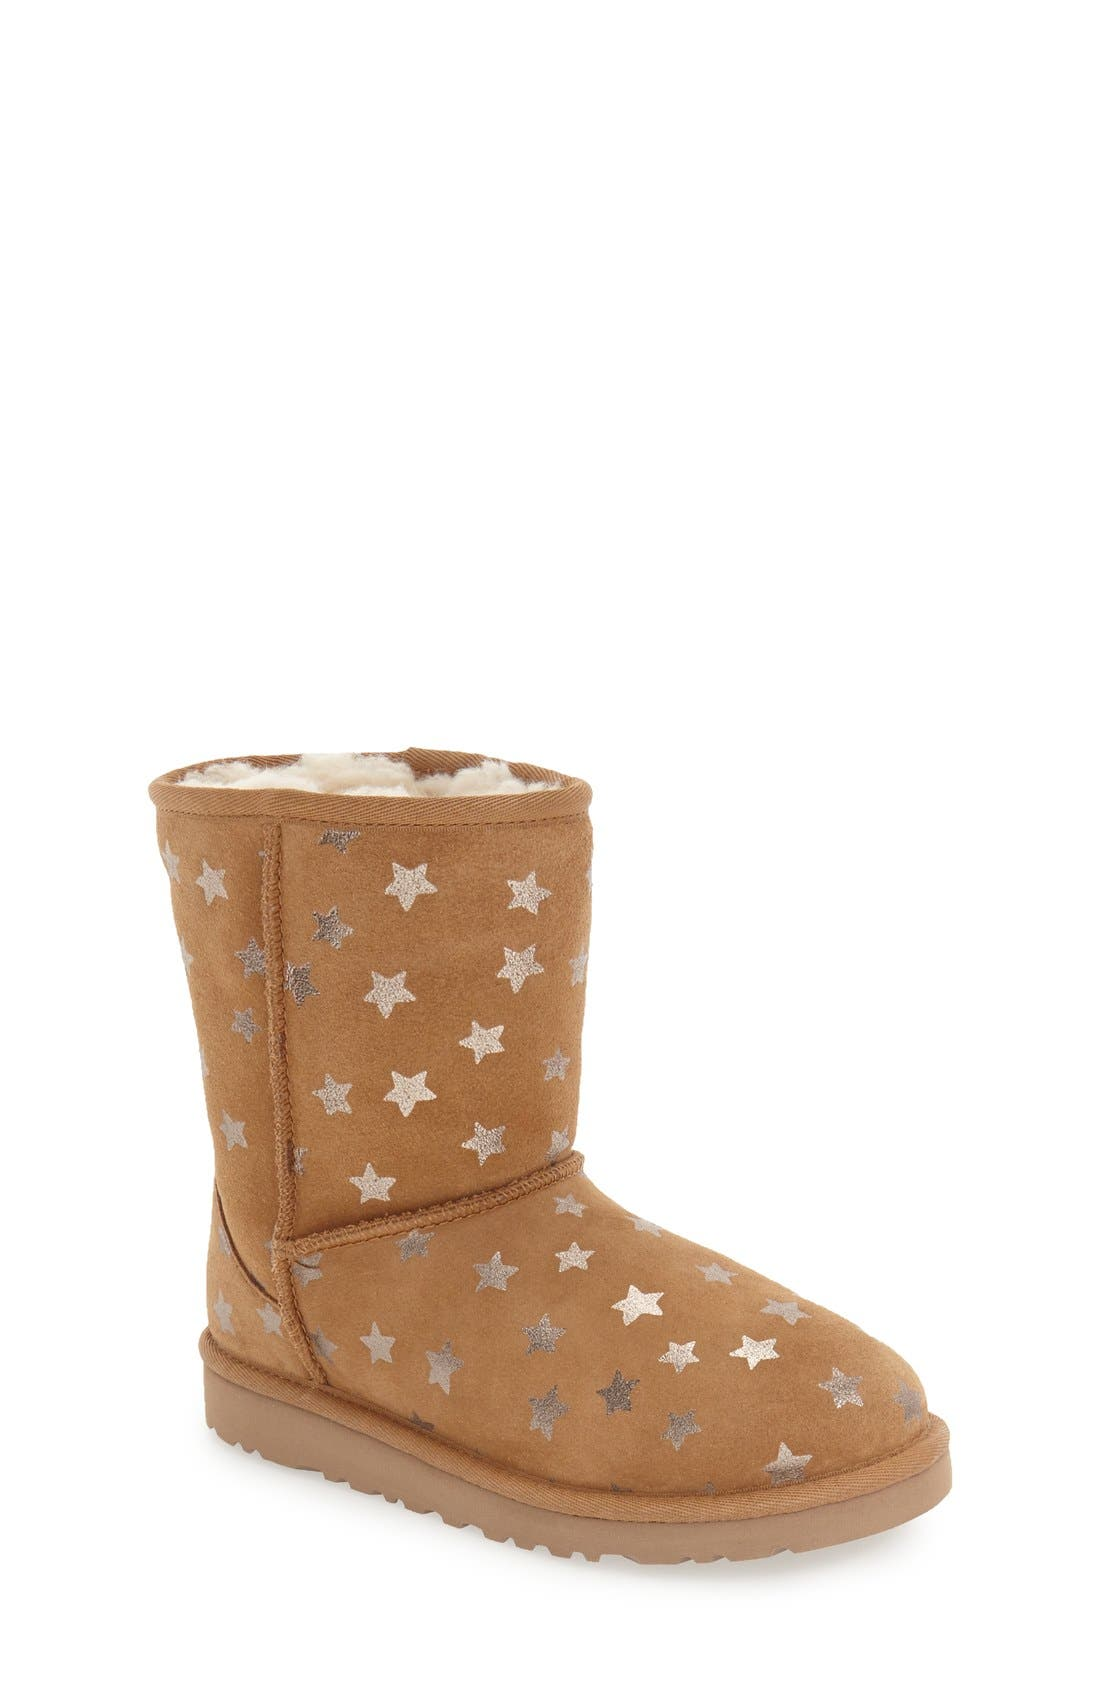 Main Image - UGG® Classic Stars Boot (Little Kid & Big Kid) (Nordstrom Exclusive)